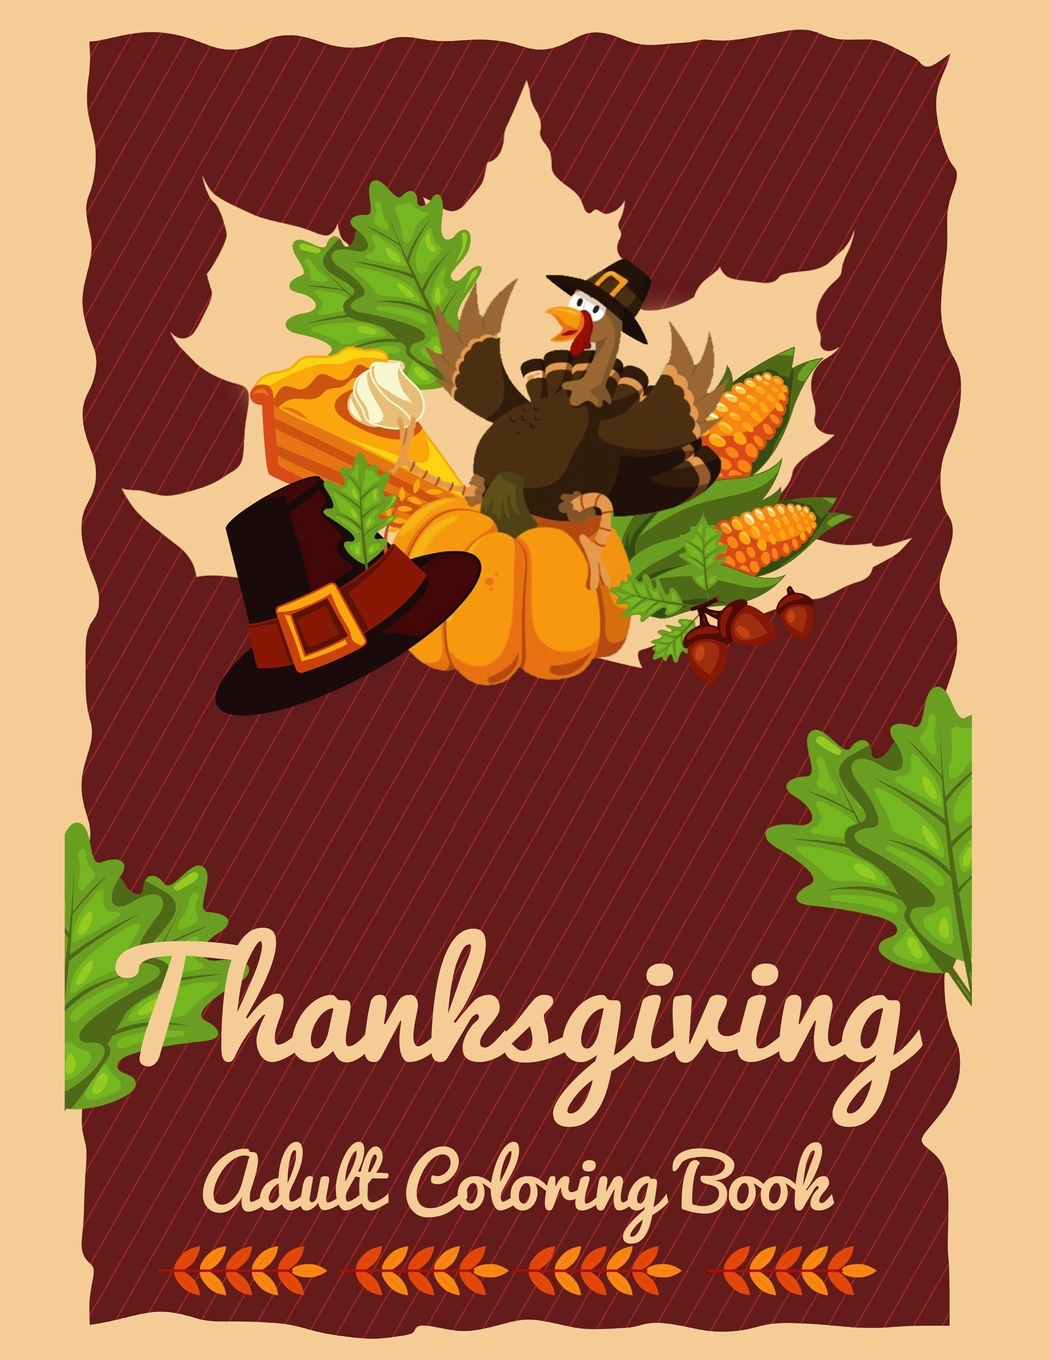 Thanksgiving Adult Coloring Book : A Big Book Of Easy Stress Relieving  Coloring Pages For Kids, Teens, Adults And Seniors (Thanksgiving Coloring  Activity Books) (Paperback) - Walmart.com - Walmart.com